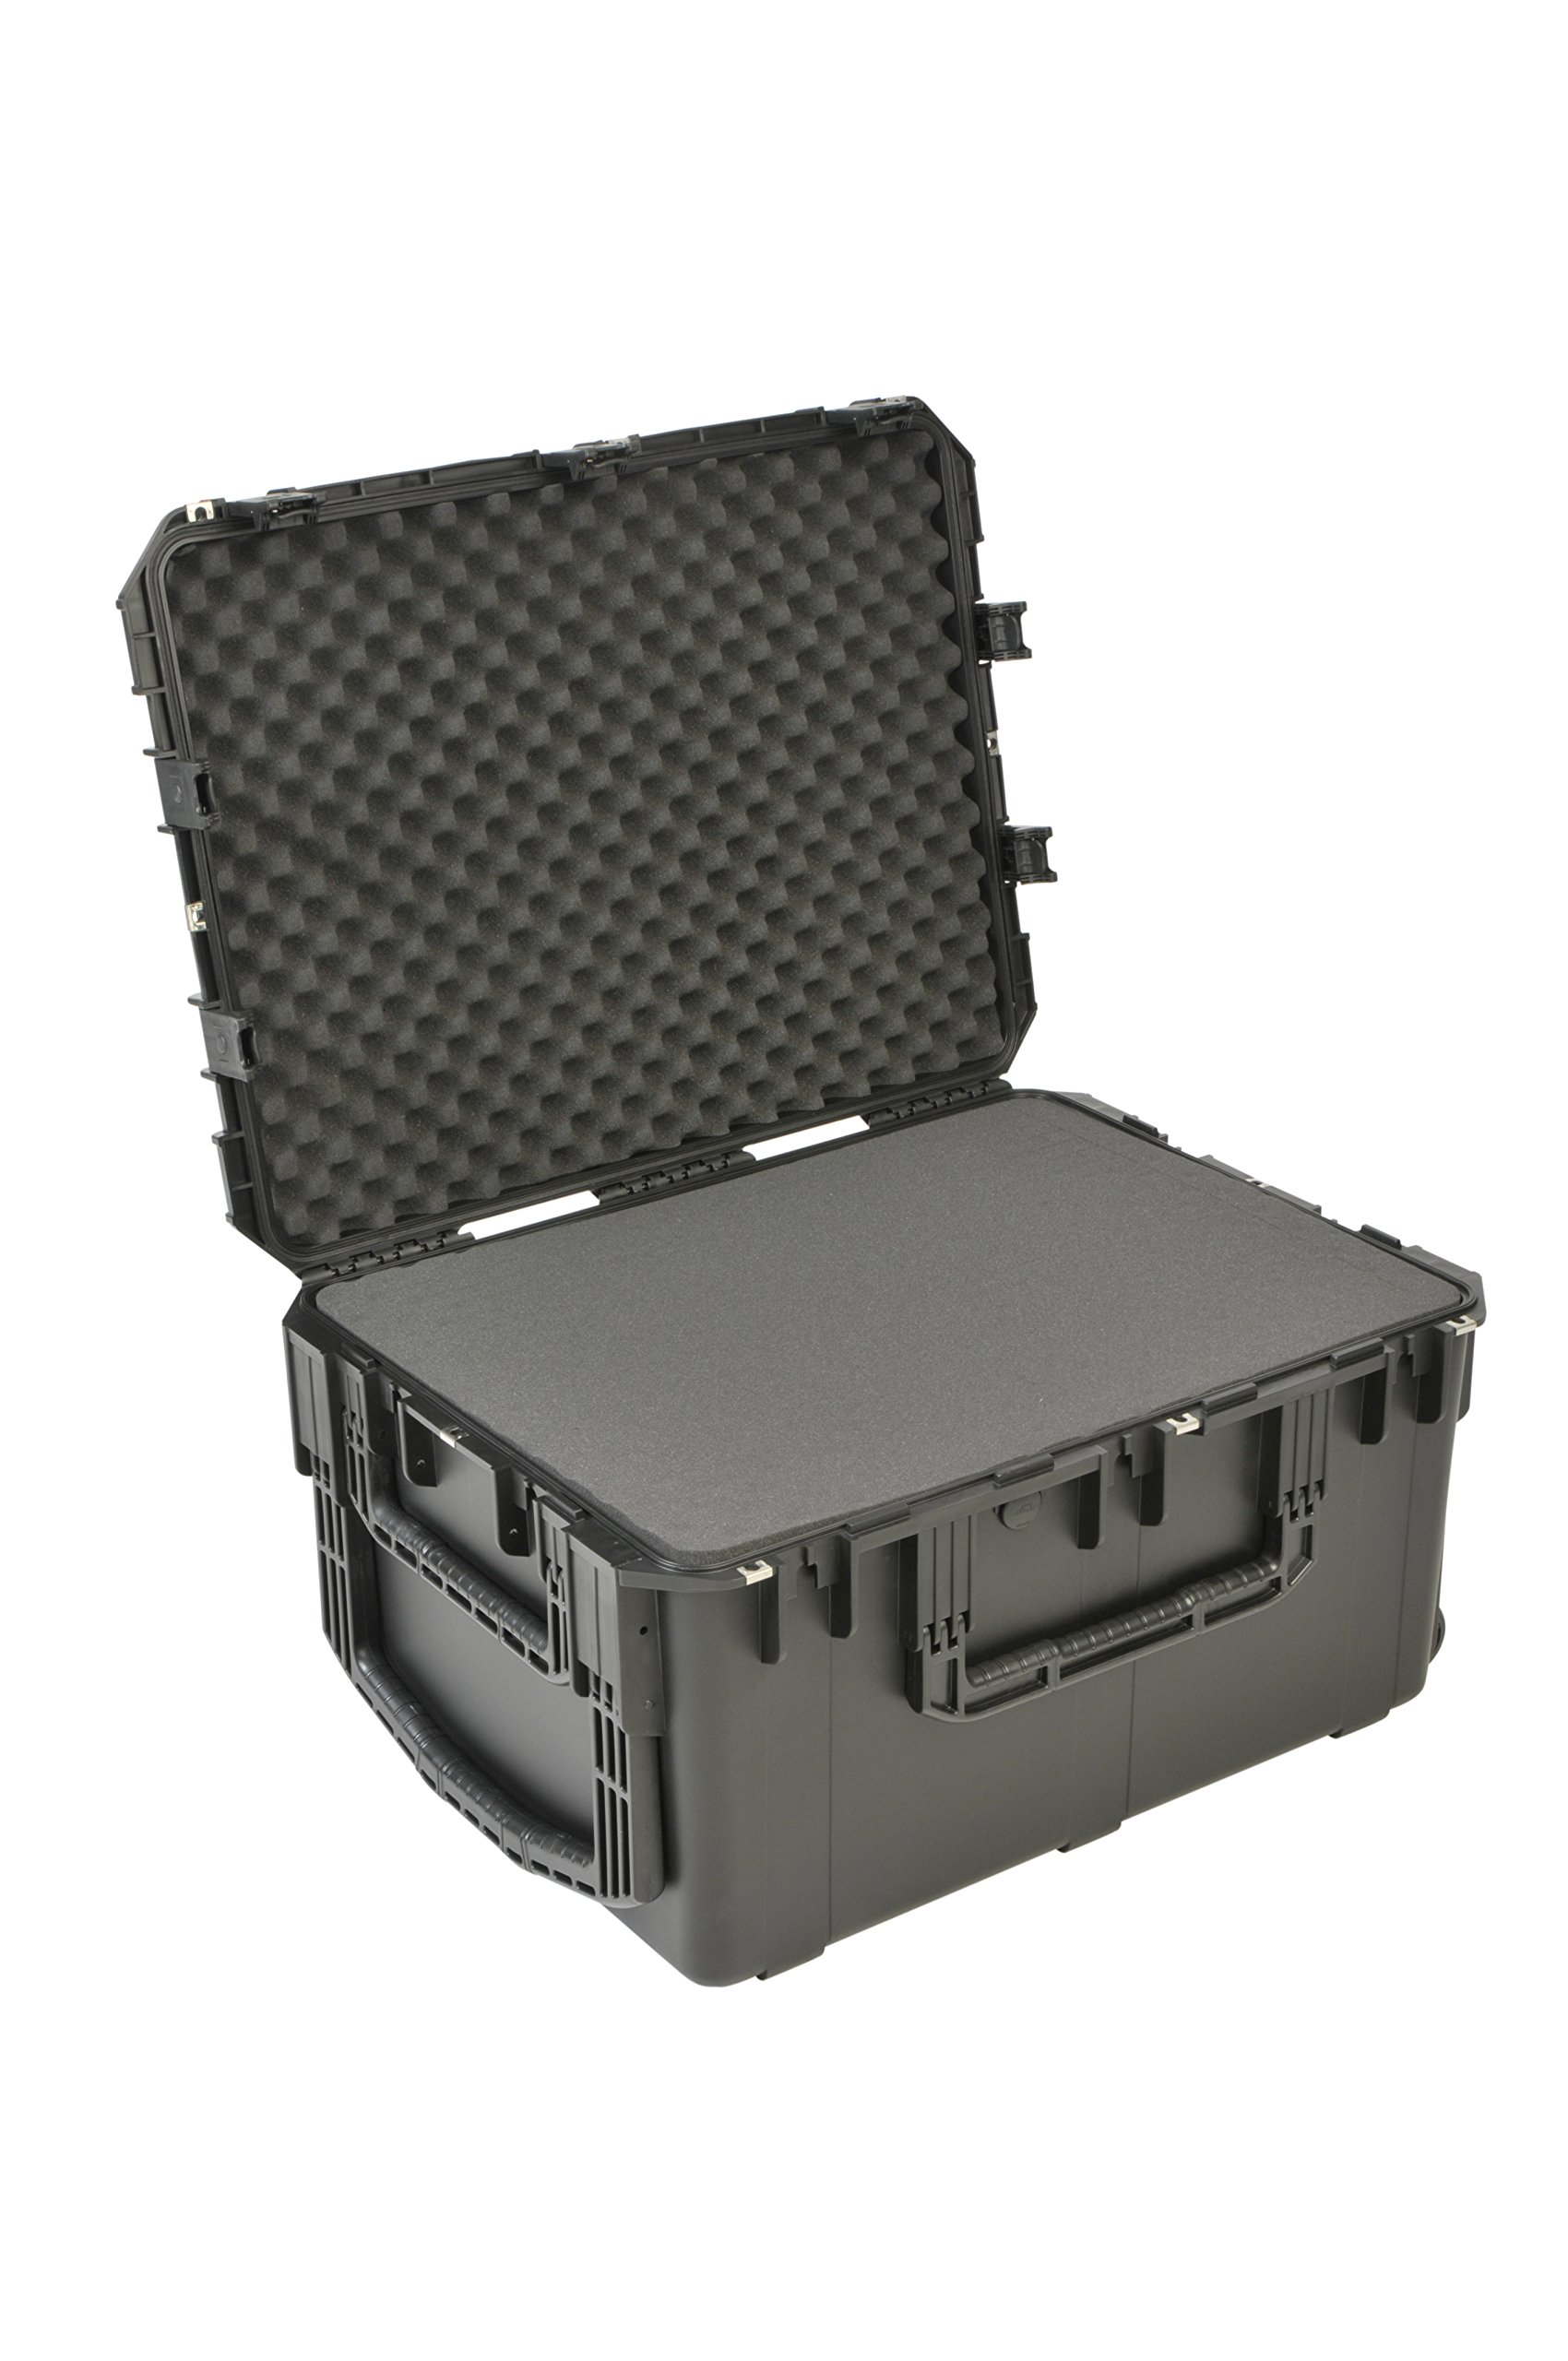 SKB 3i-2922-16BC iSeries Waterproof Case - 29'' x 22'' x 16'' with wheels Cubed Foam